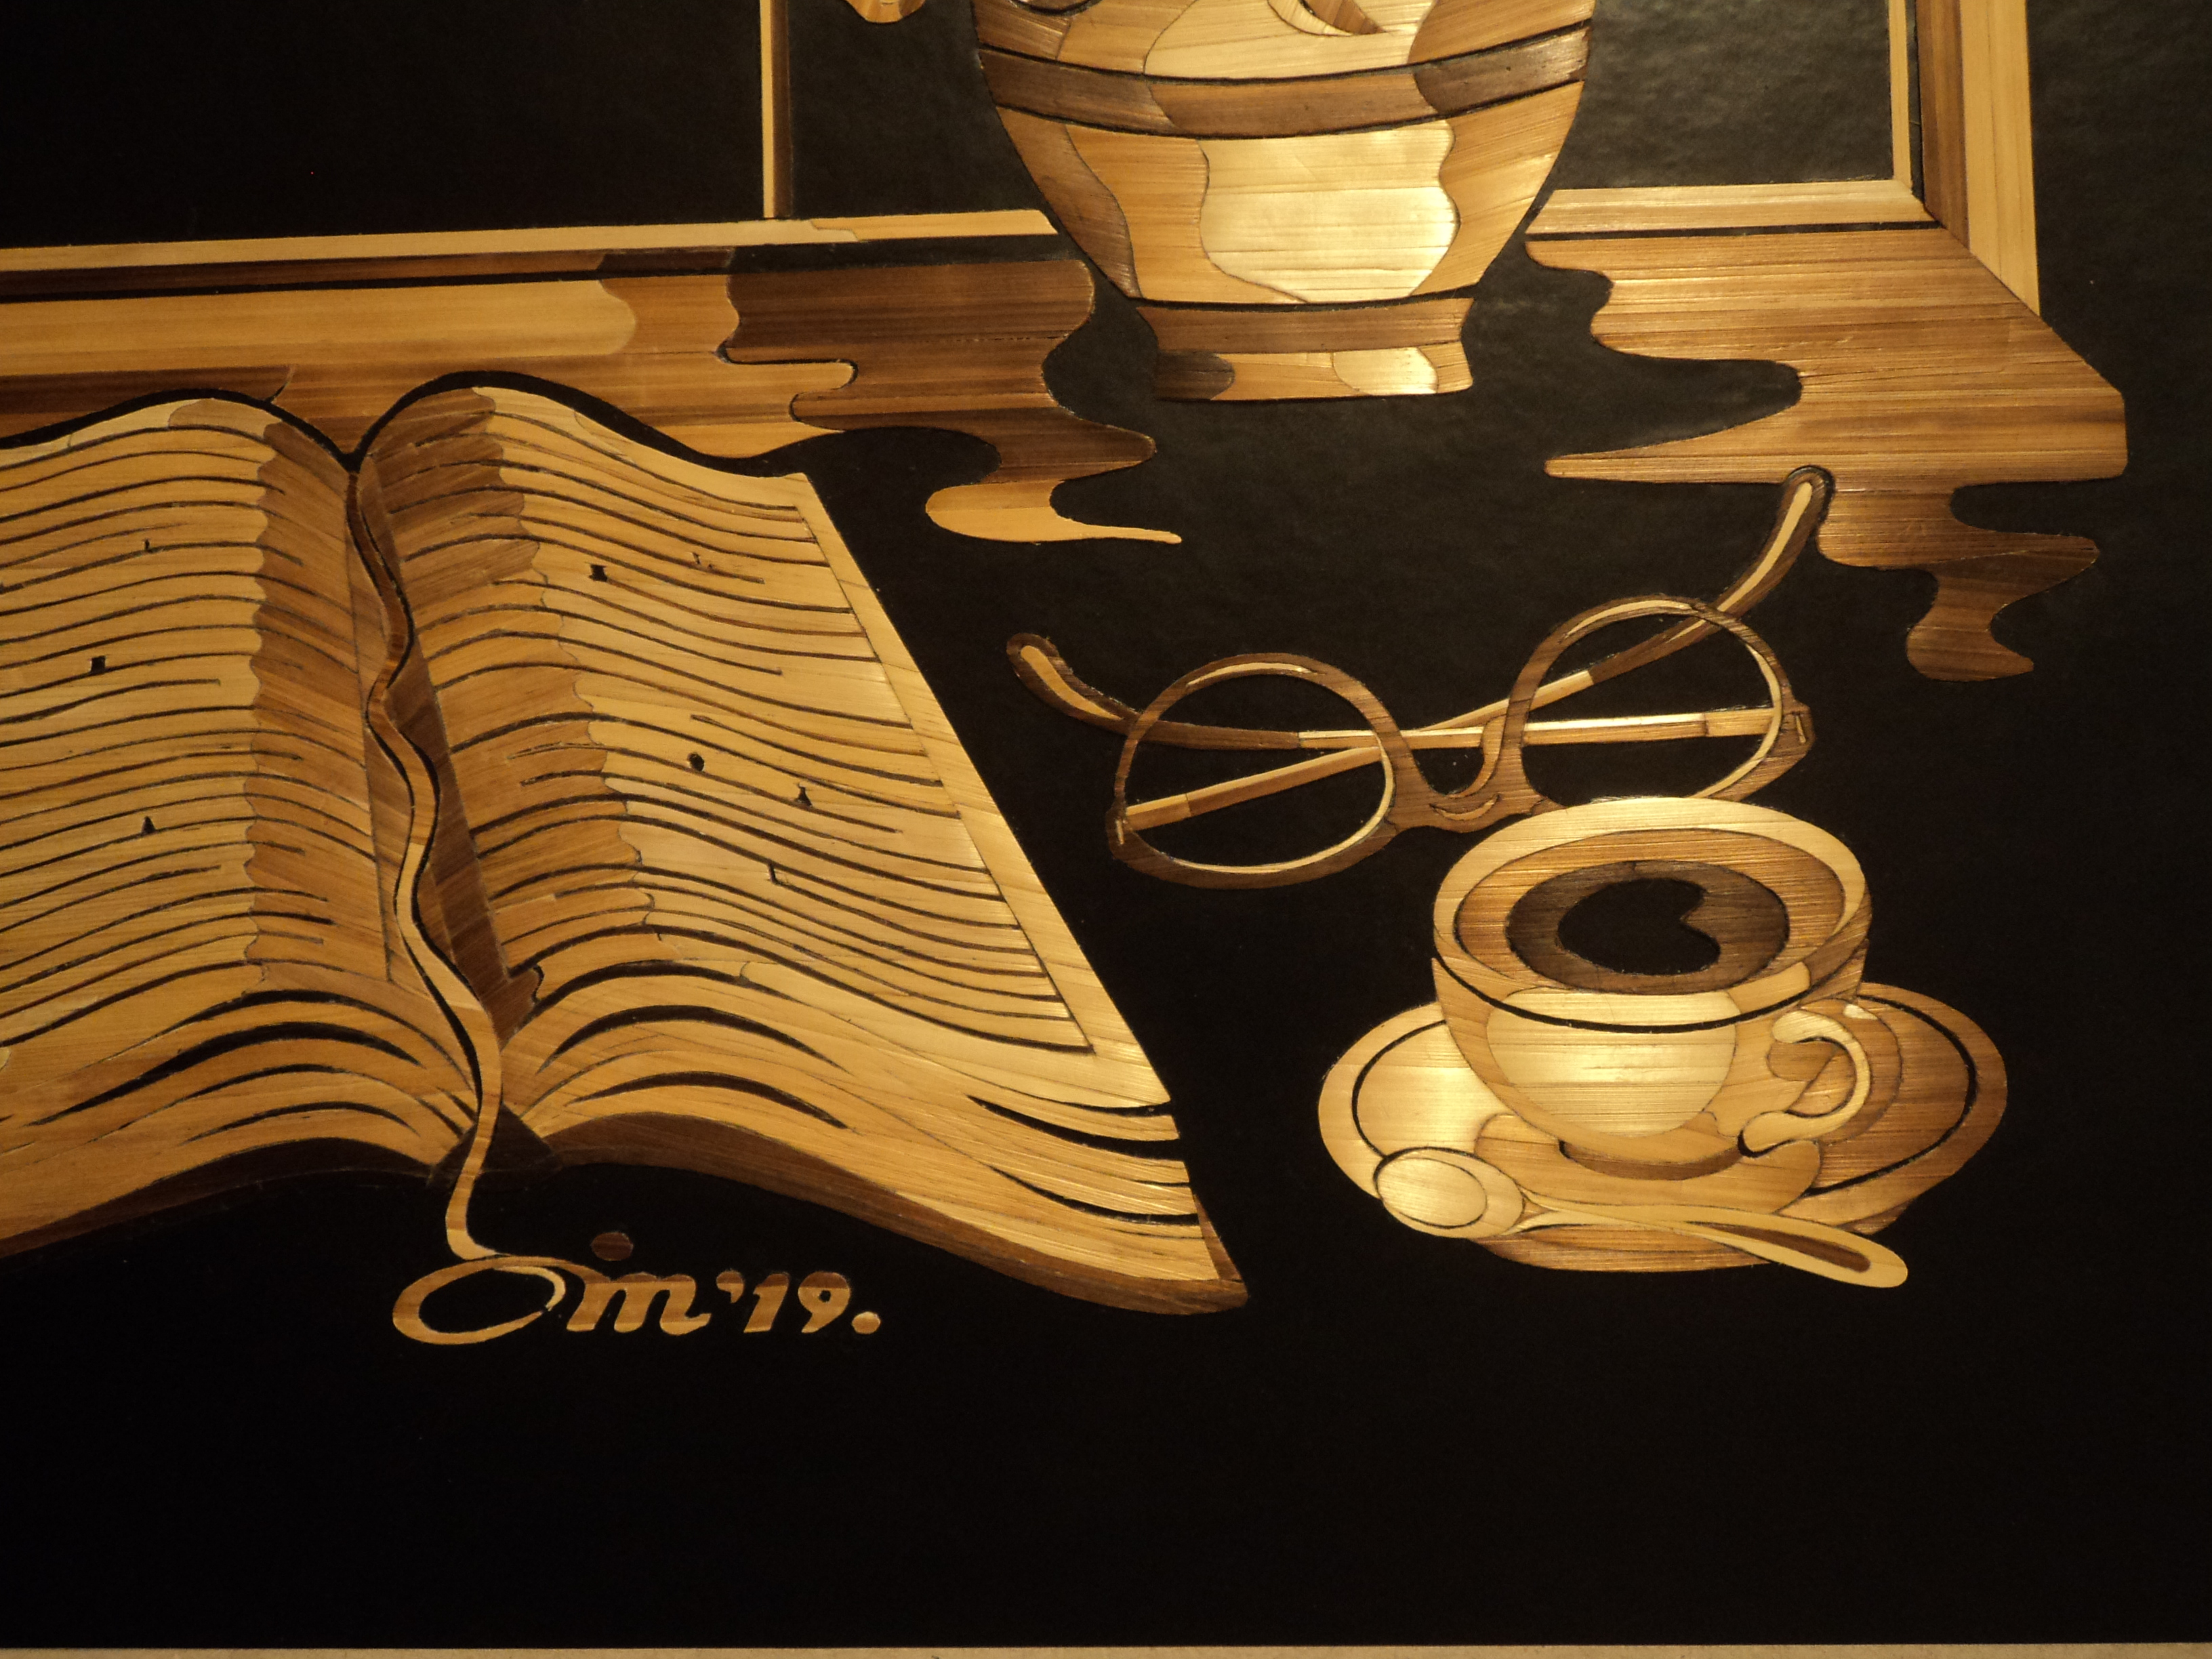 Jasmin Mesaric Spring Morning detail of book and coffee cup, courtesy the artist